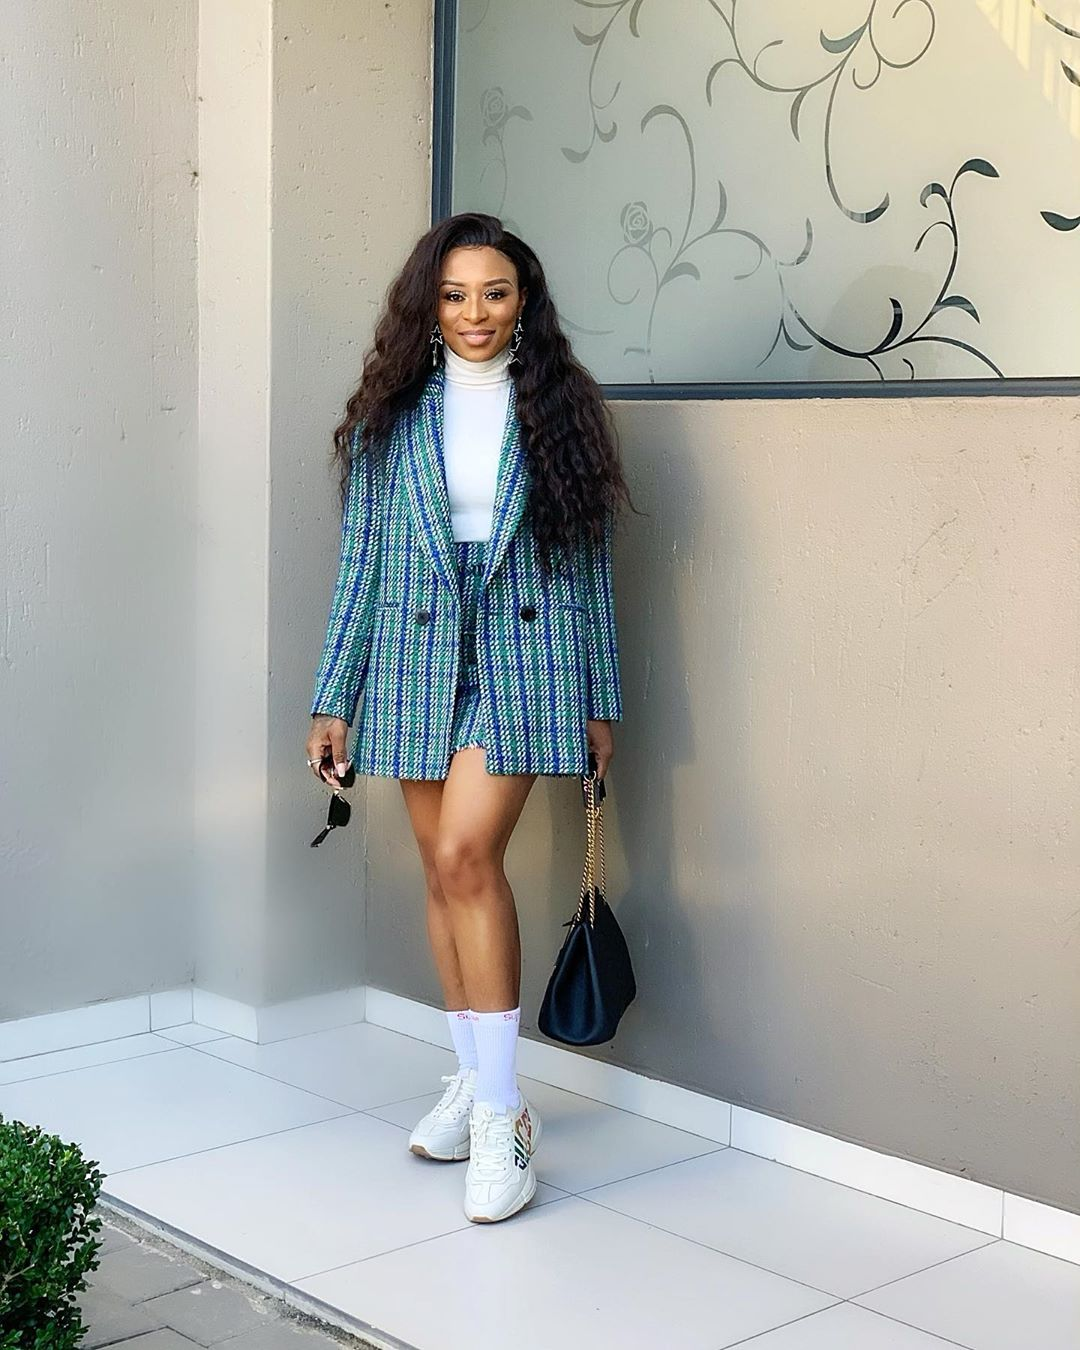 dj-zinhle-southafrican-celeb-style-south-african-celebrity